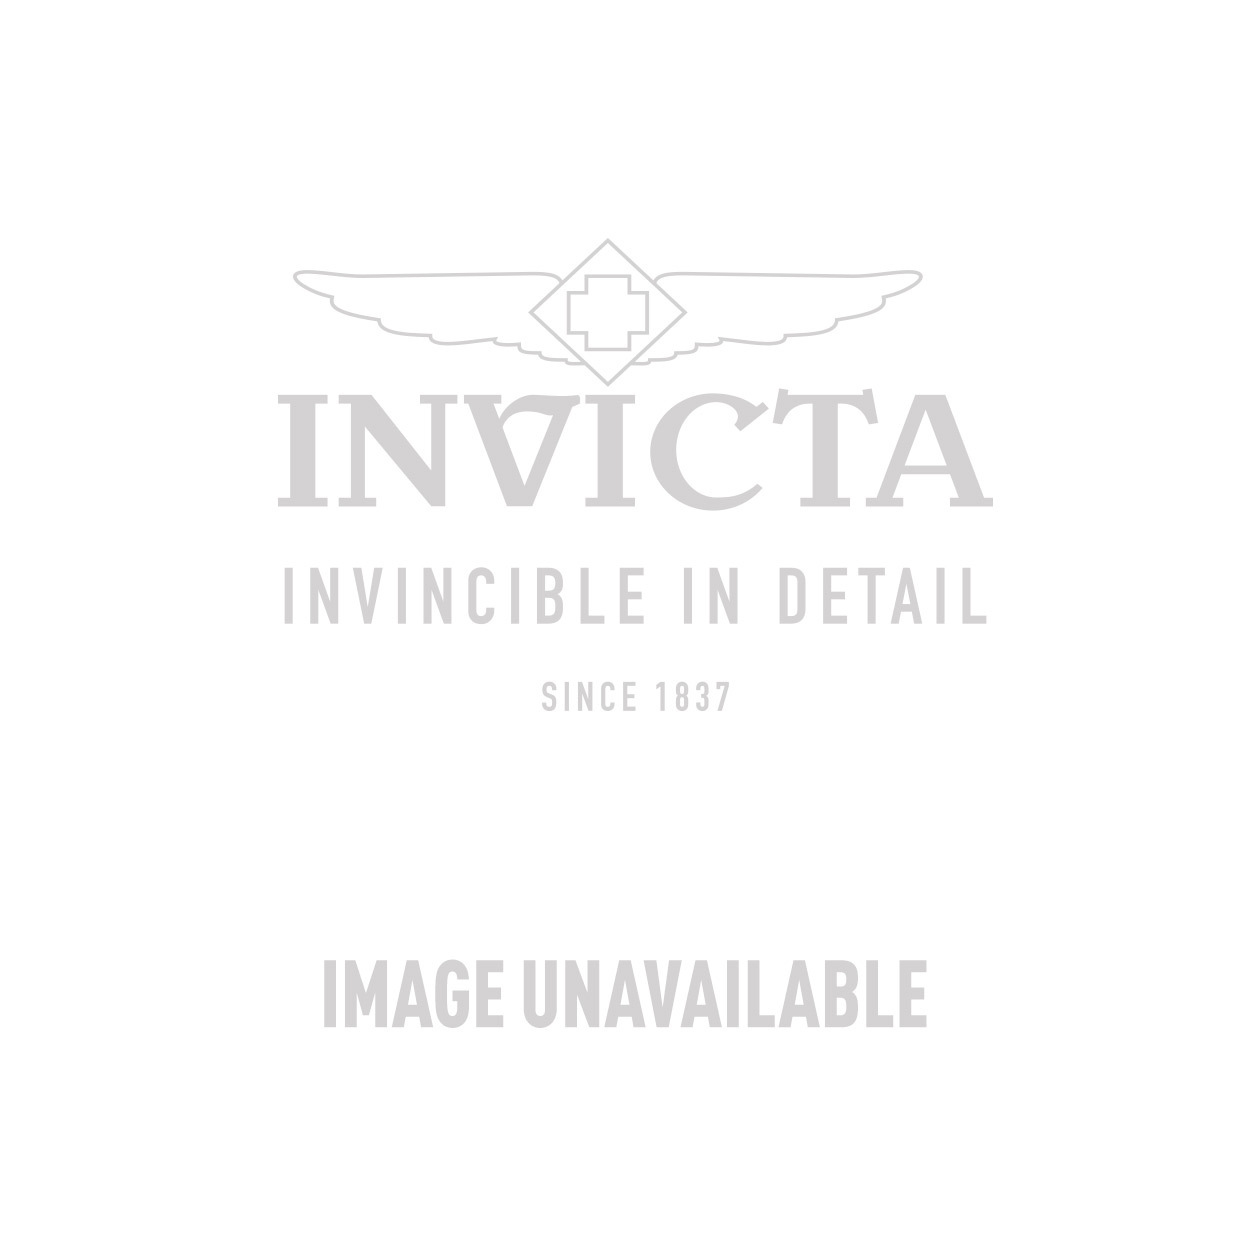 Invicta Angel Swiss Movement Quartz Watch - Gold, Brown case with Gold, Brown tone Stainless Steel band - Model 14728